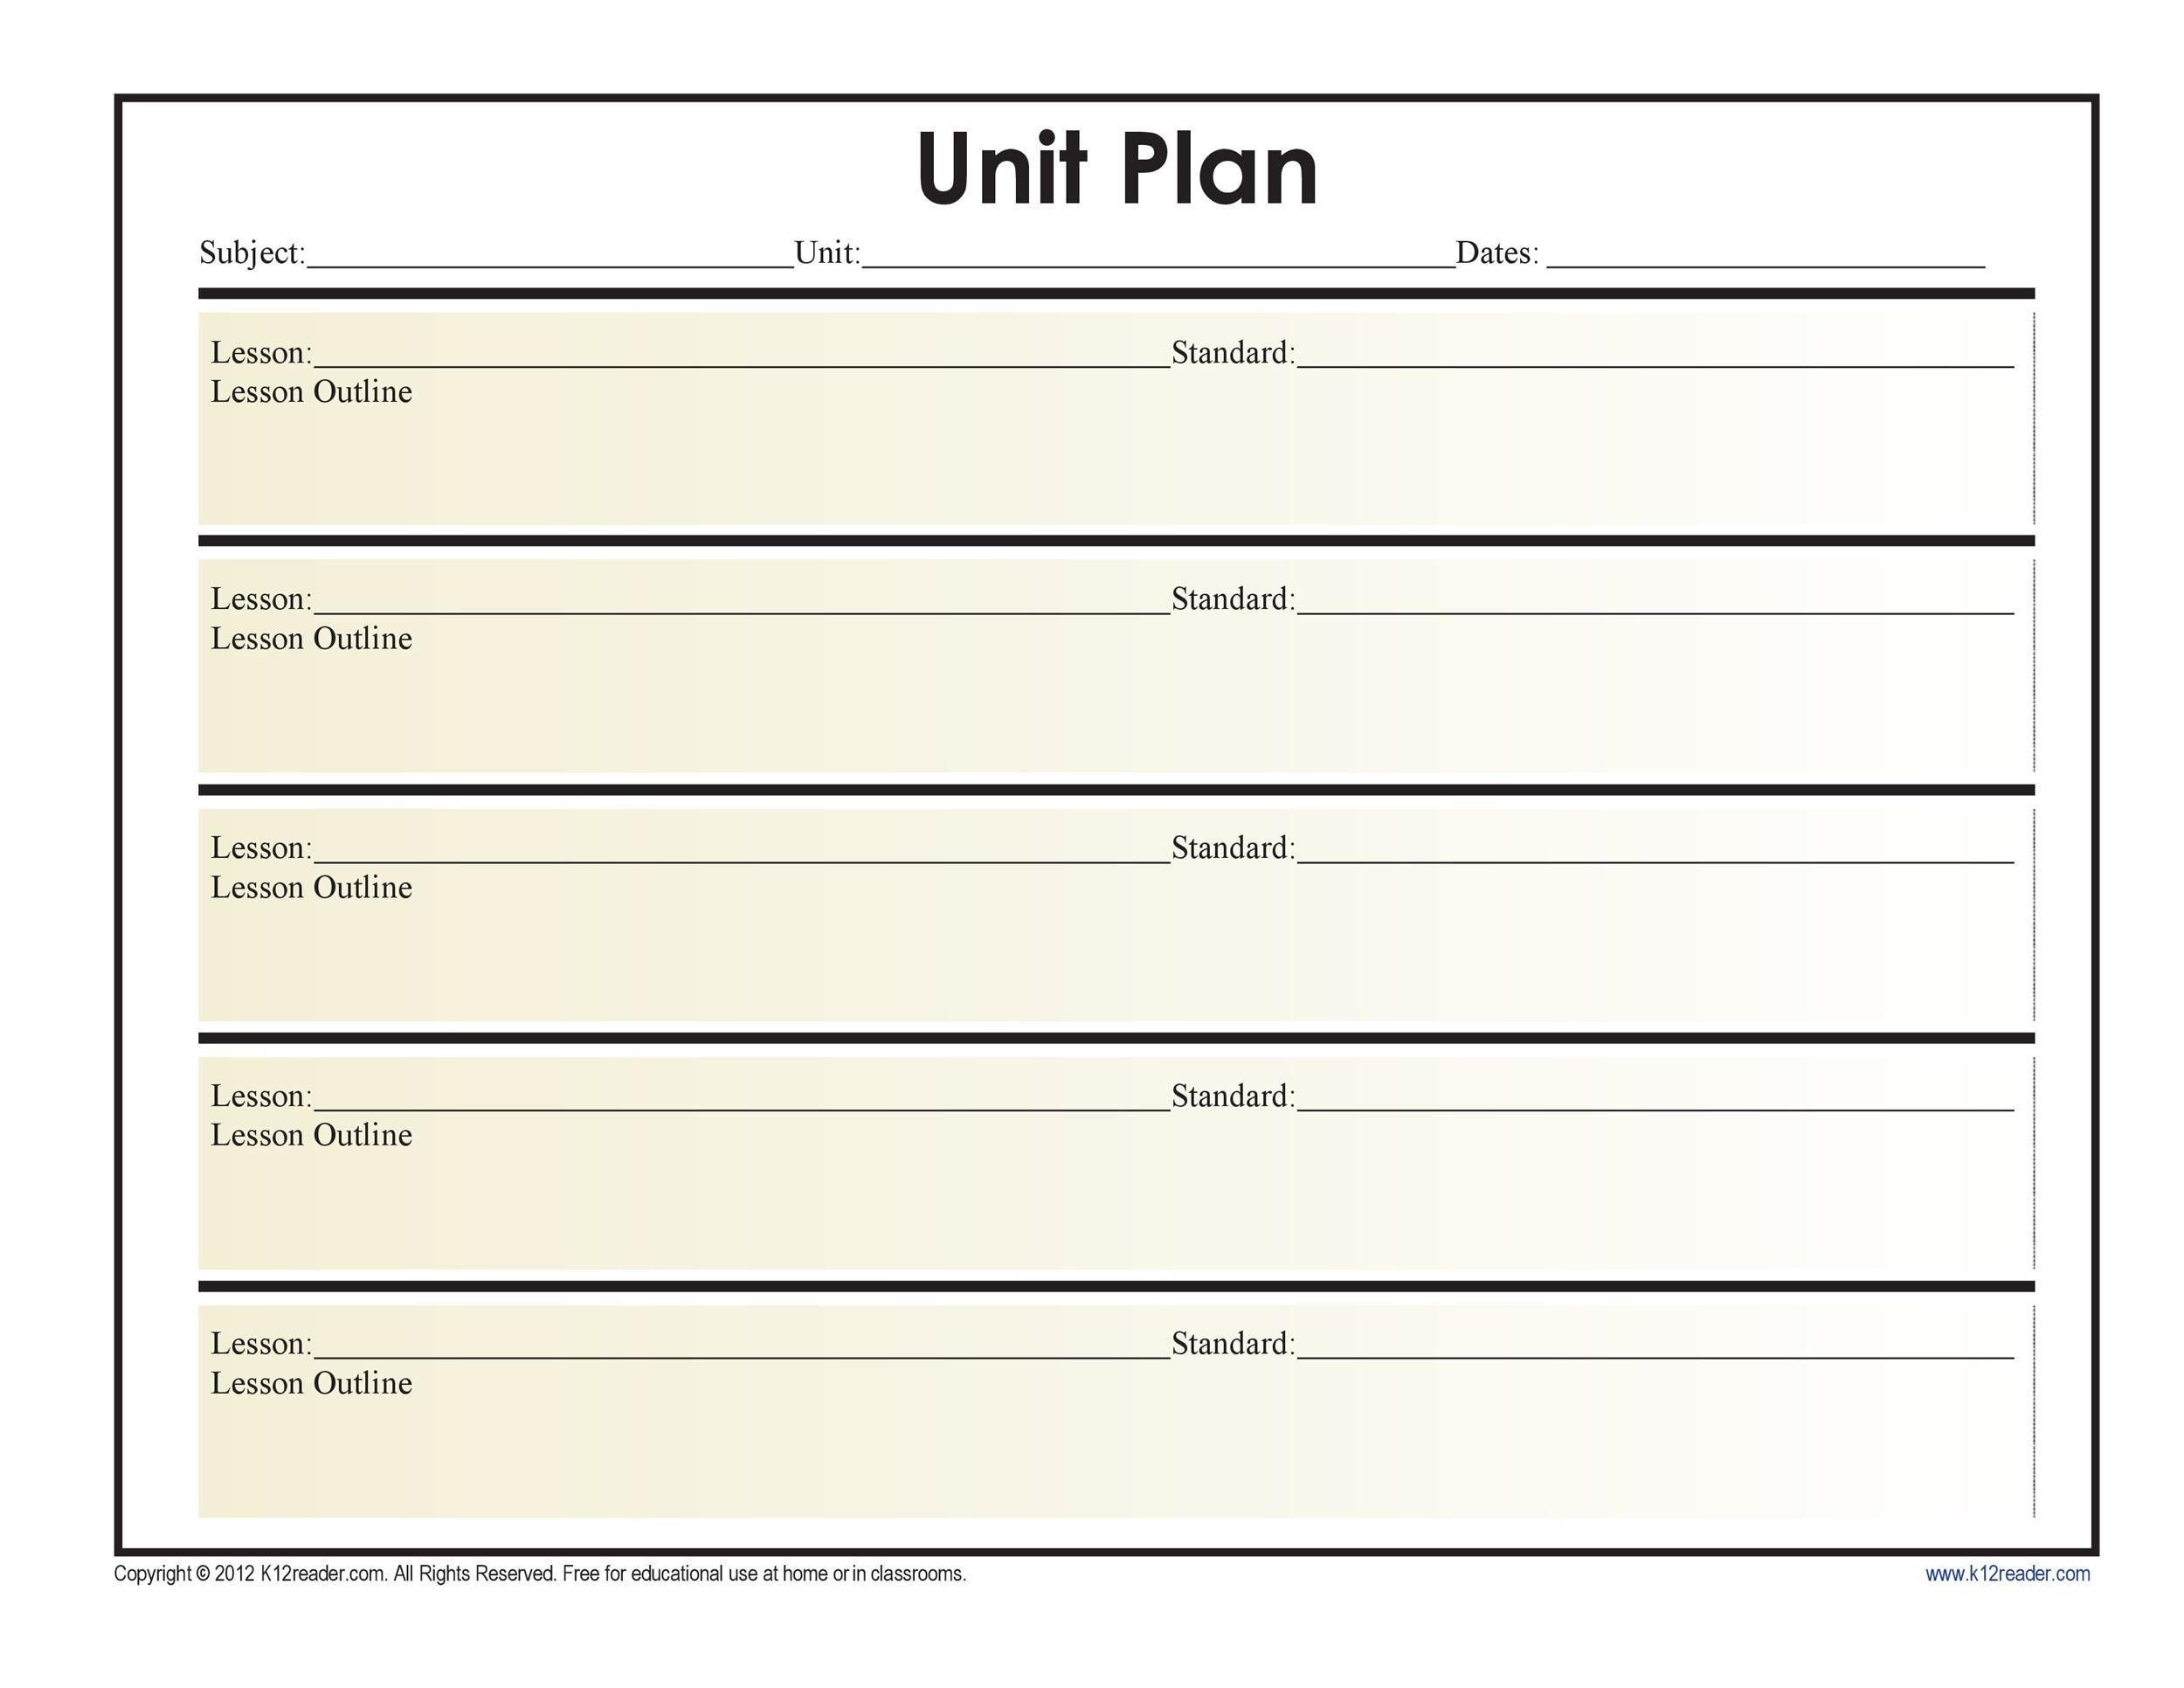 Free unit plan template 14